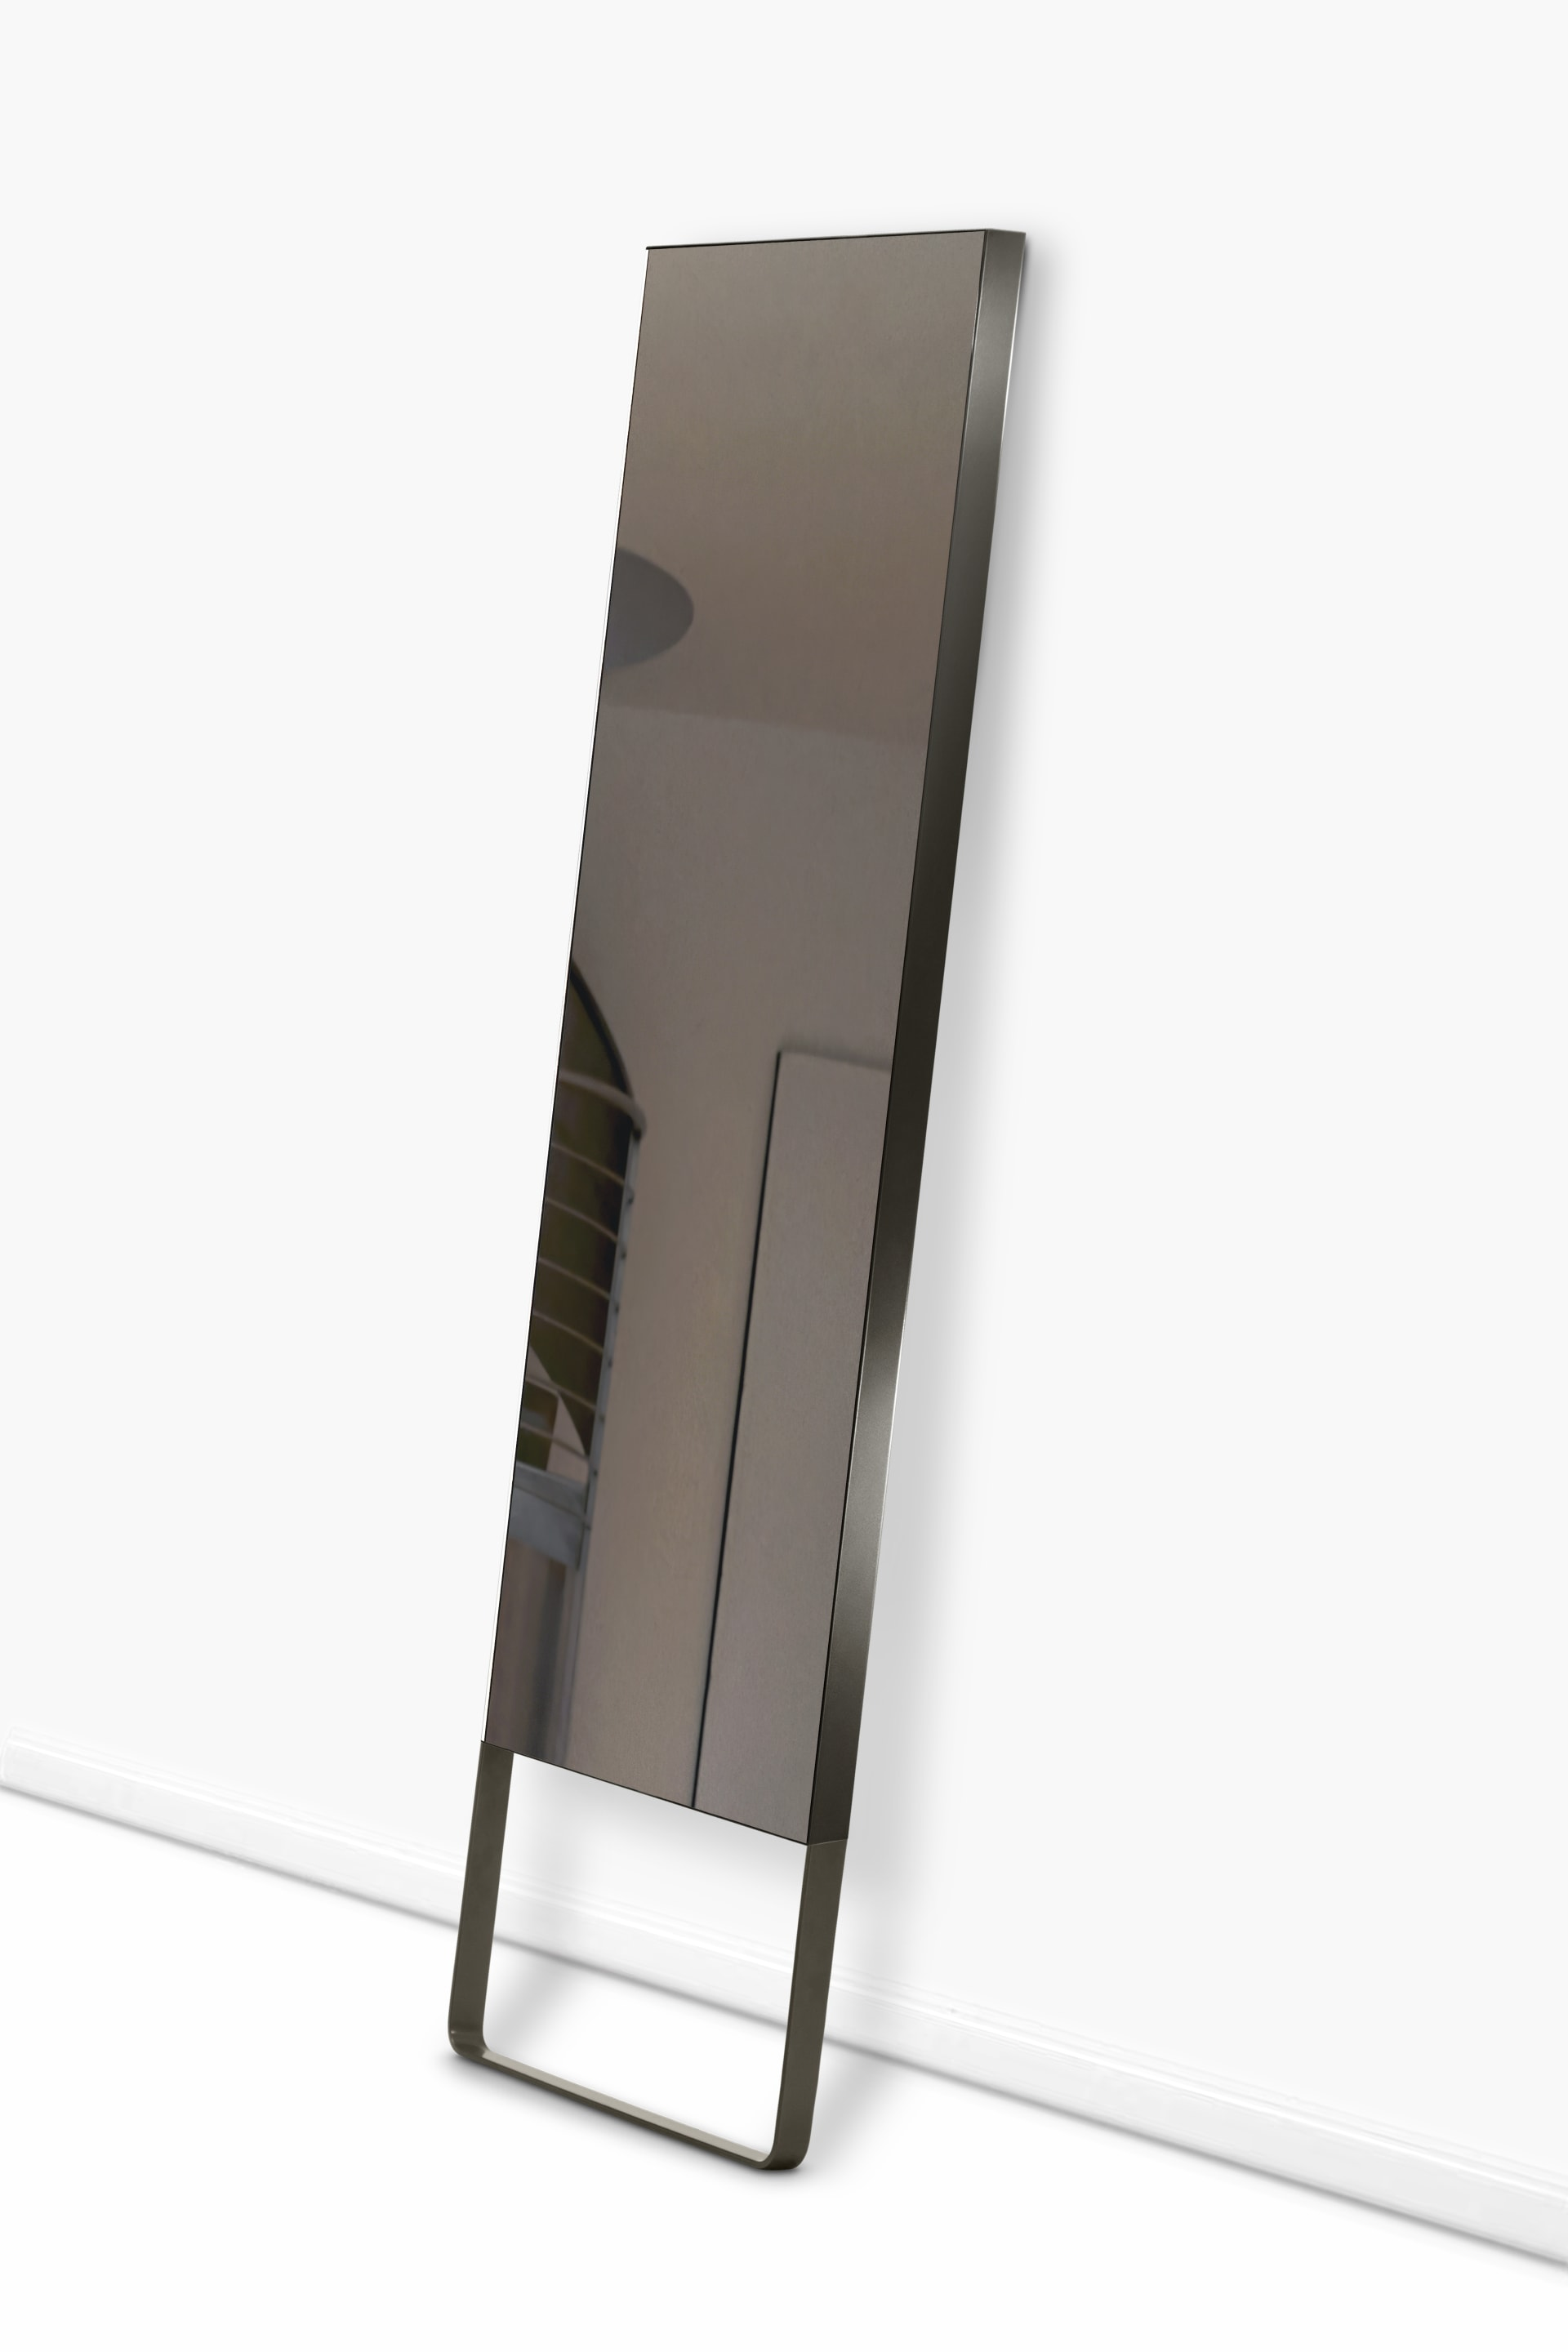 The Mirror, The Original Workout Smart Home Fitness System